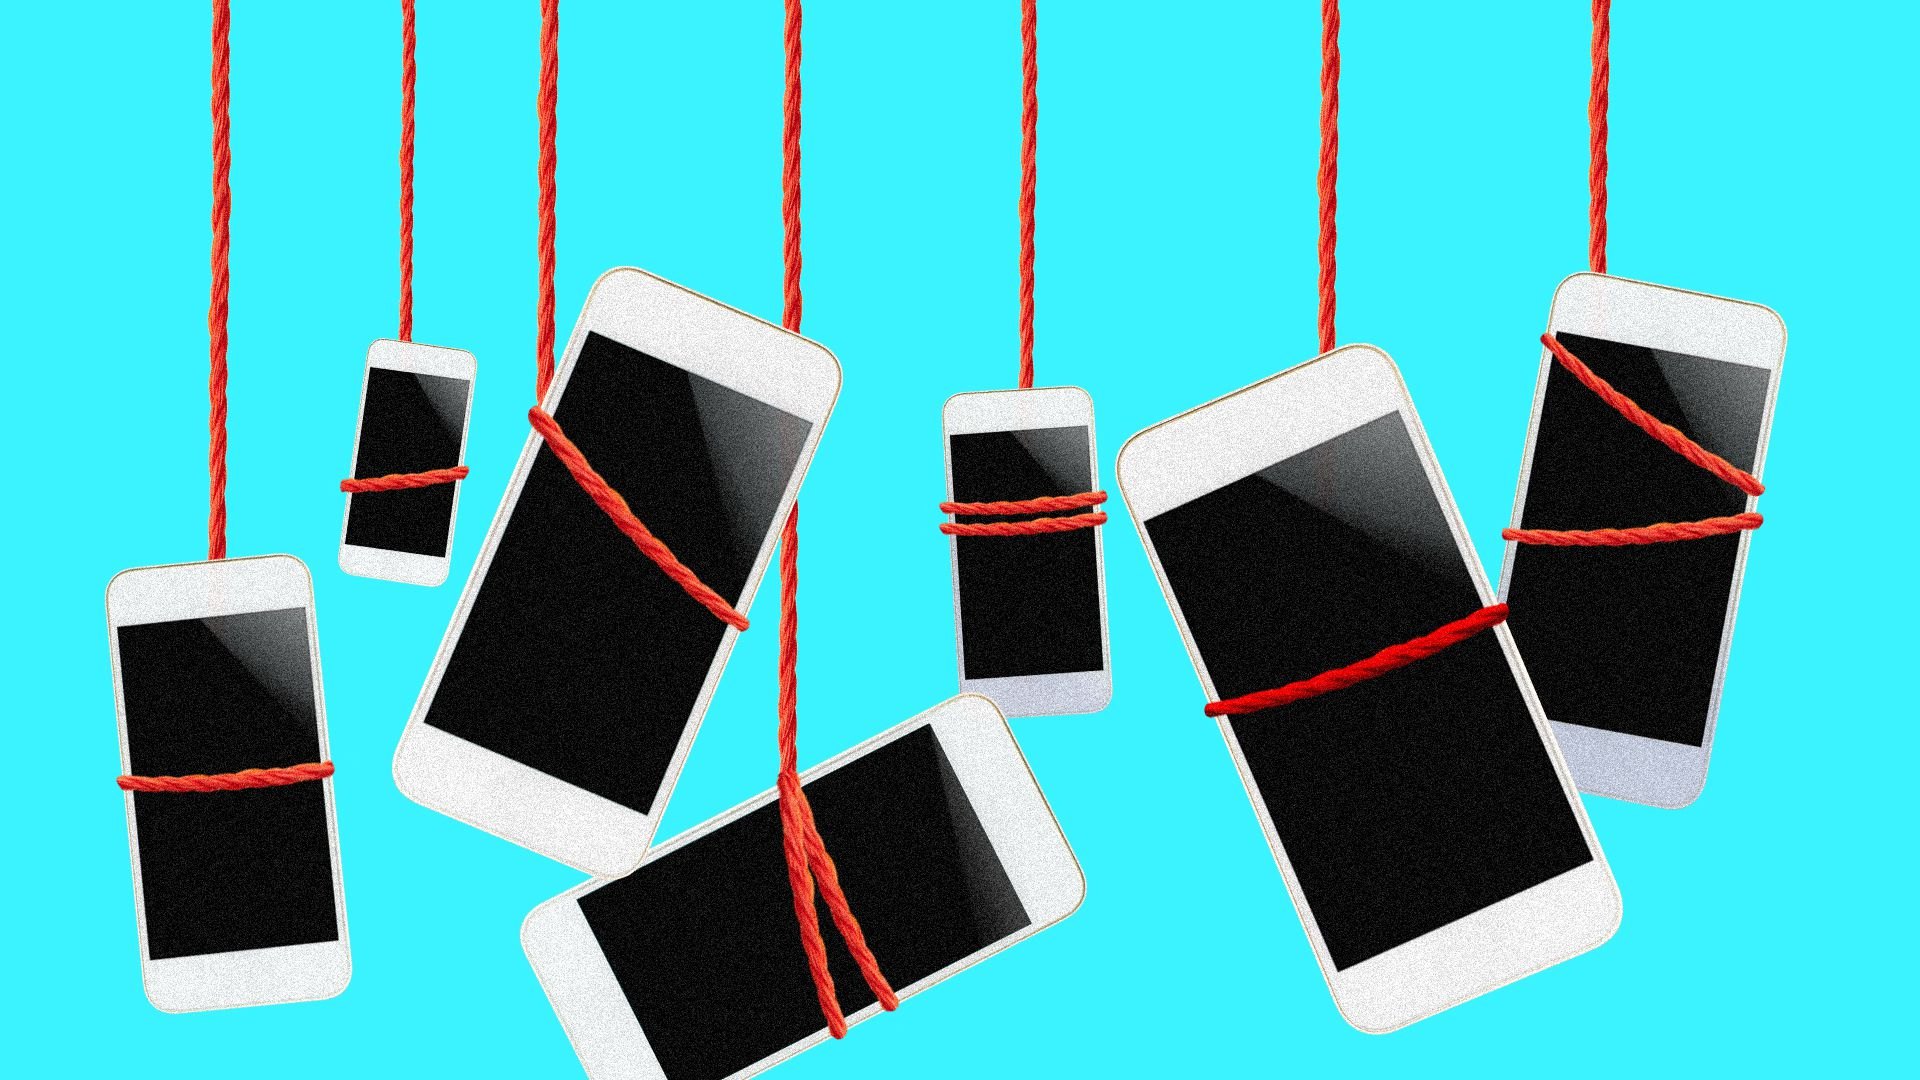 Illustration of smartphones with strings attached